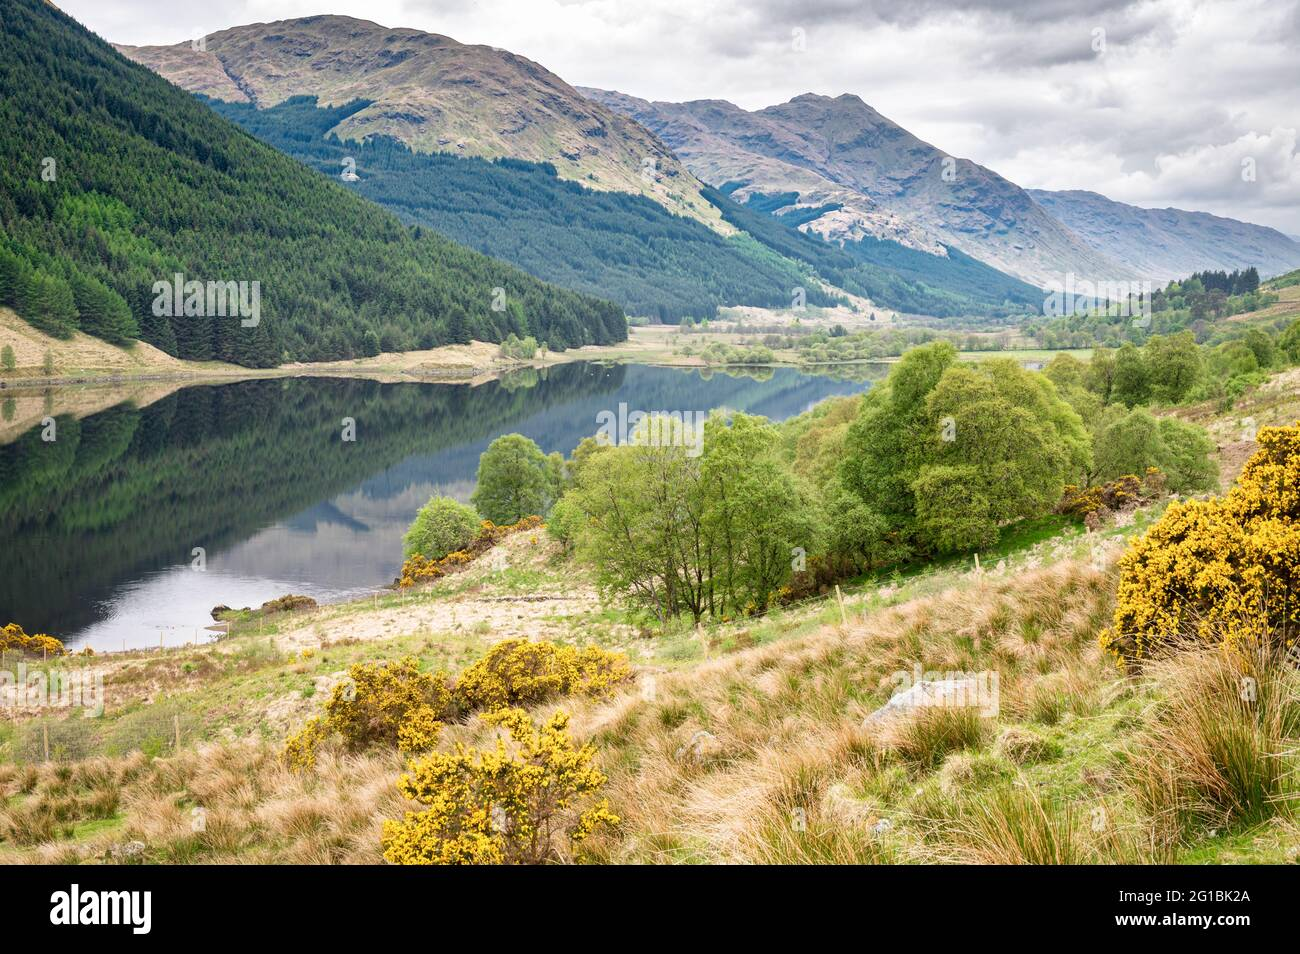 Loch Doine in a remote valley in the Scottish Highlands Stock Photo